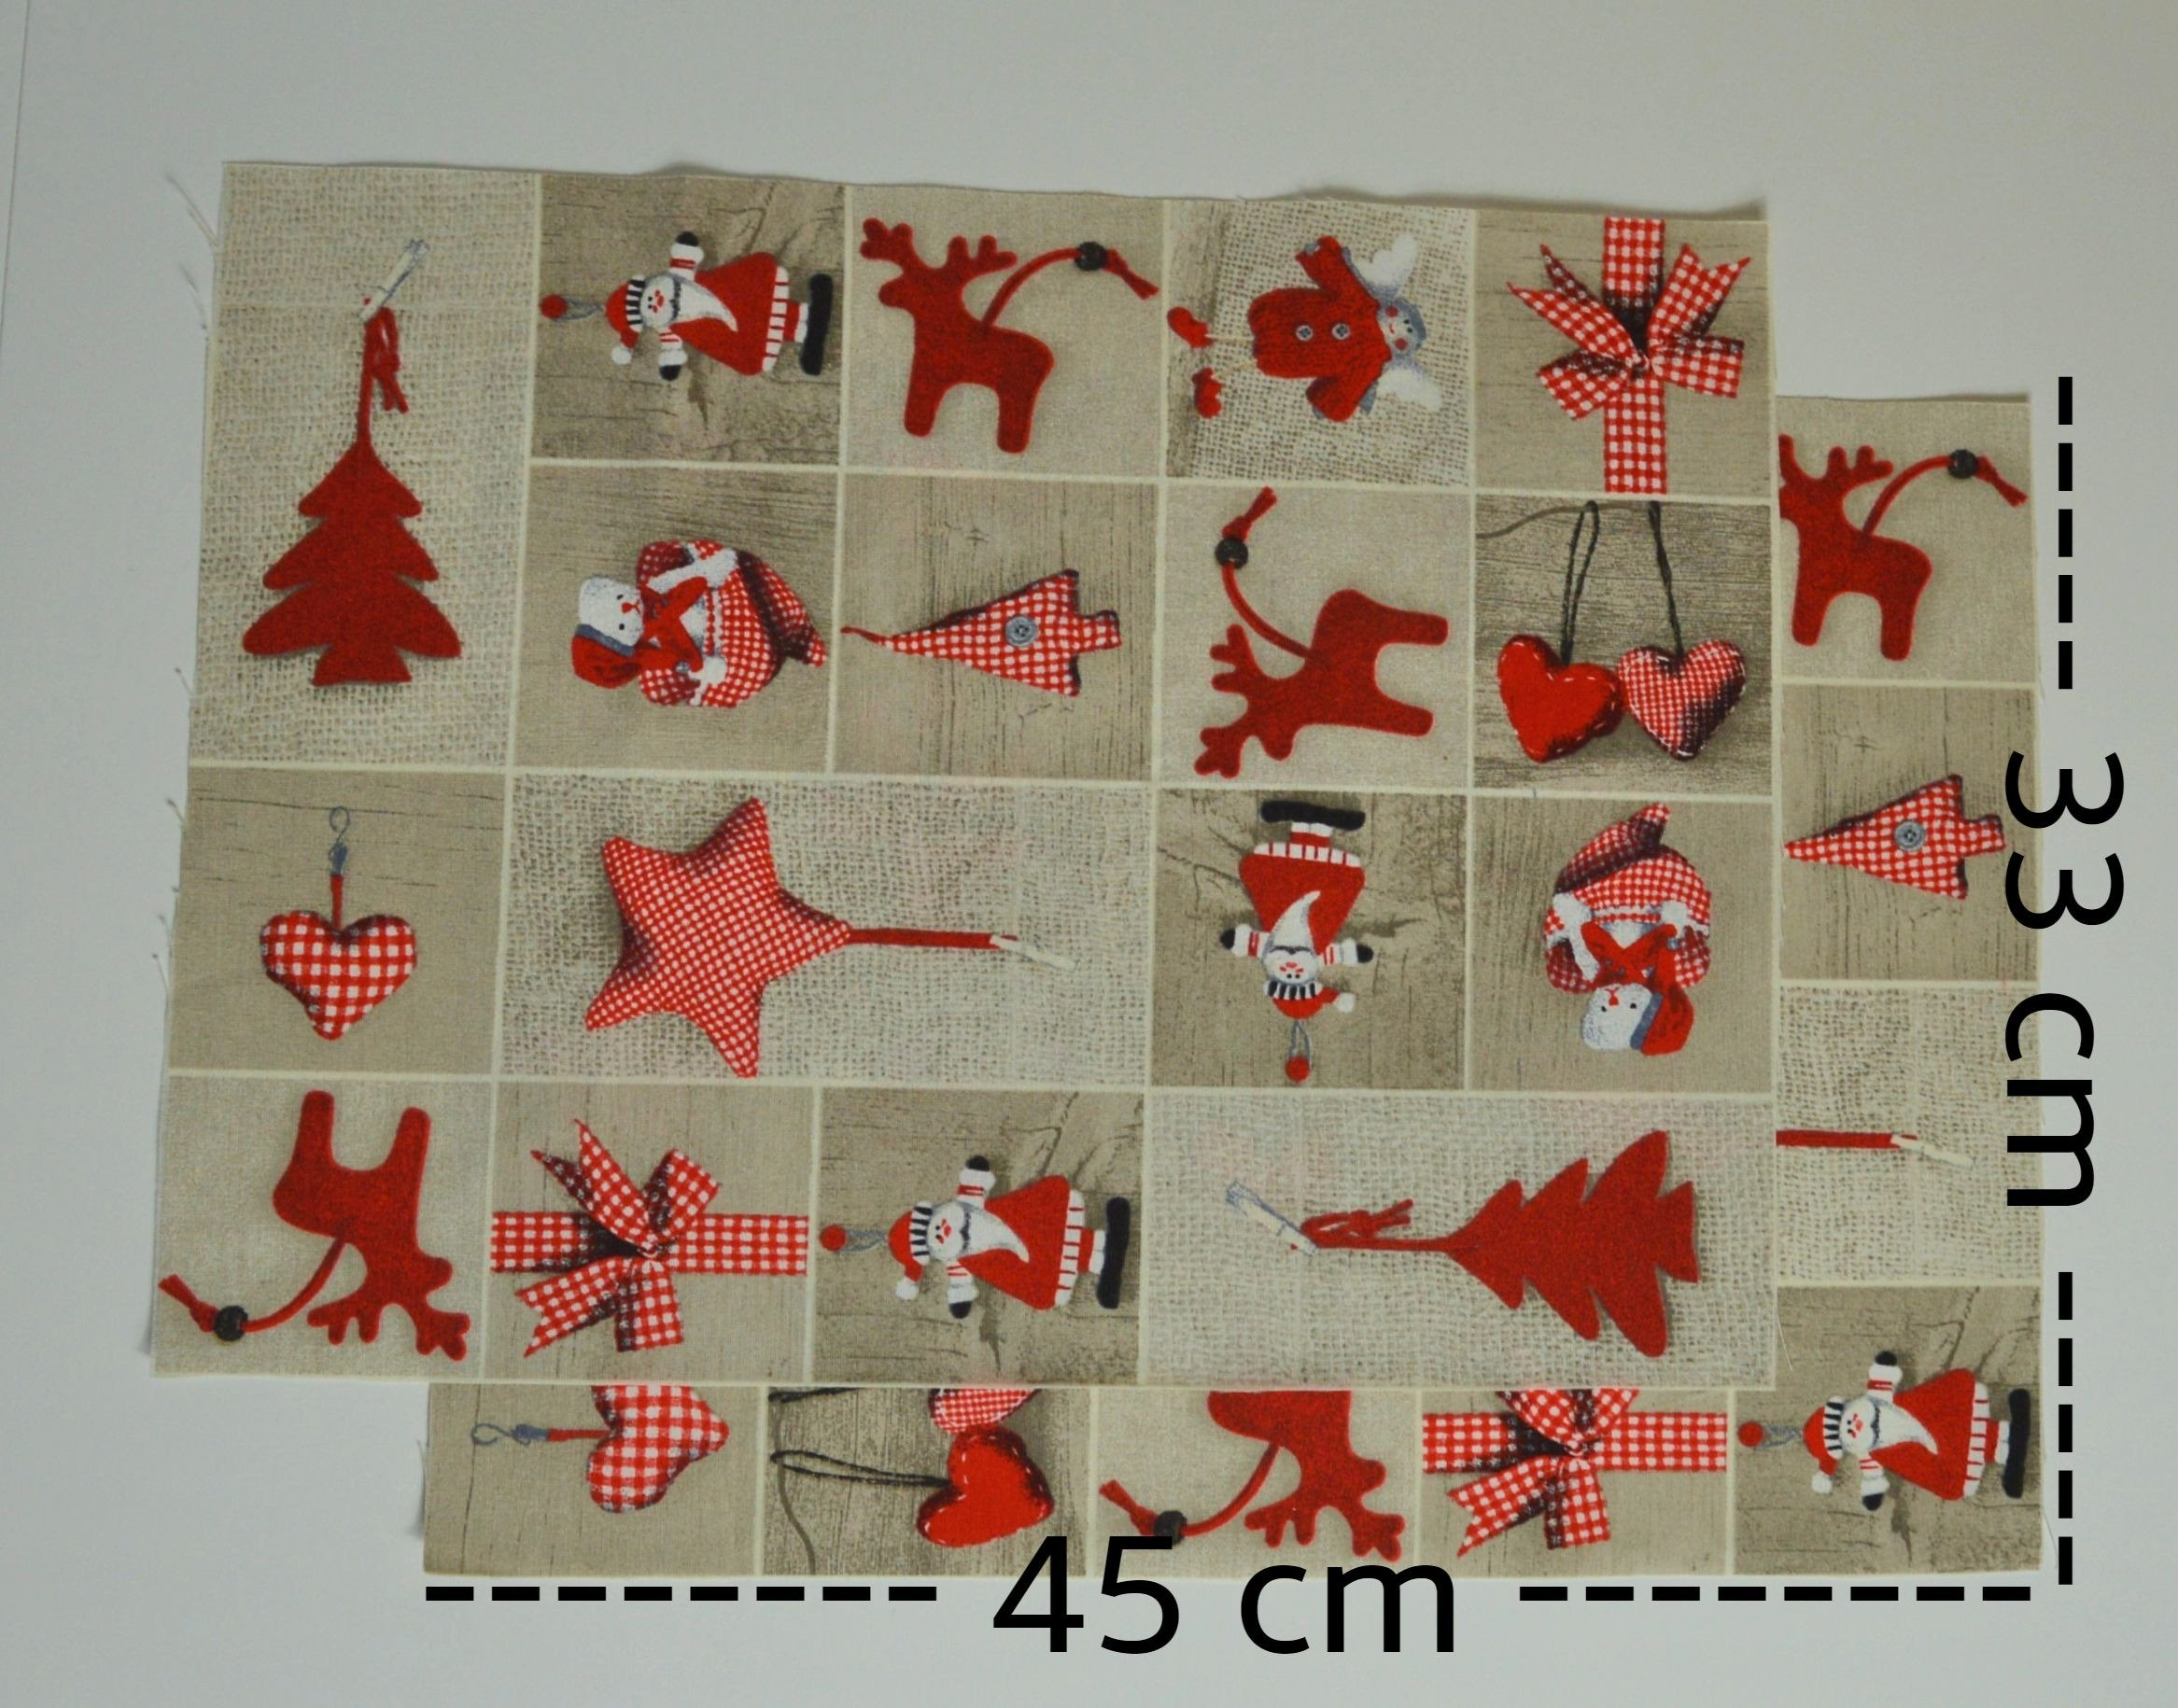 Sew Table Decorations using Binder Attachment #87